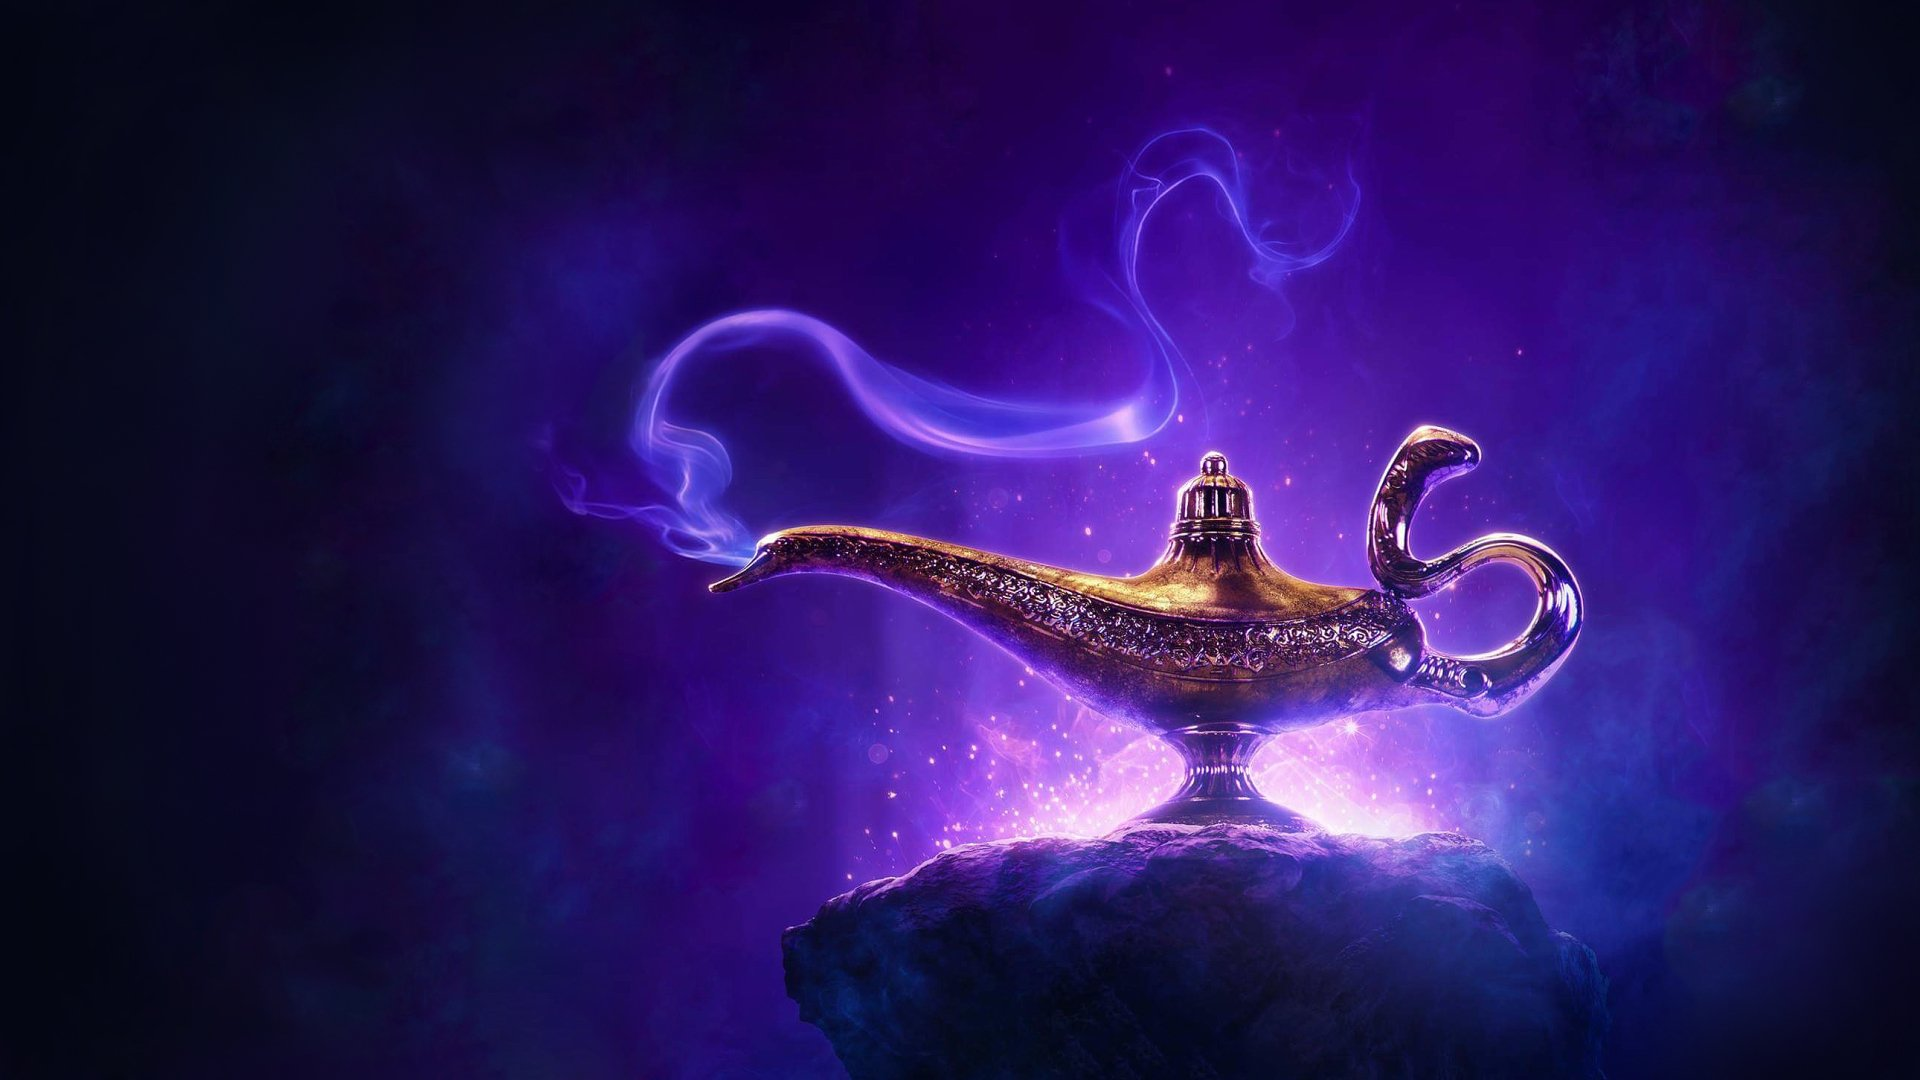 4 Aladdin 2019 HD Wallpapers Background Images 1920x1080